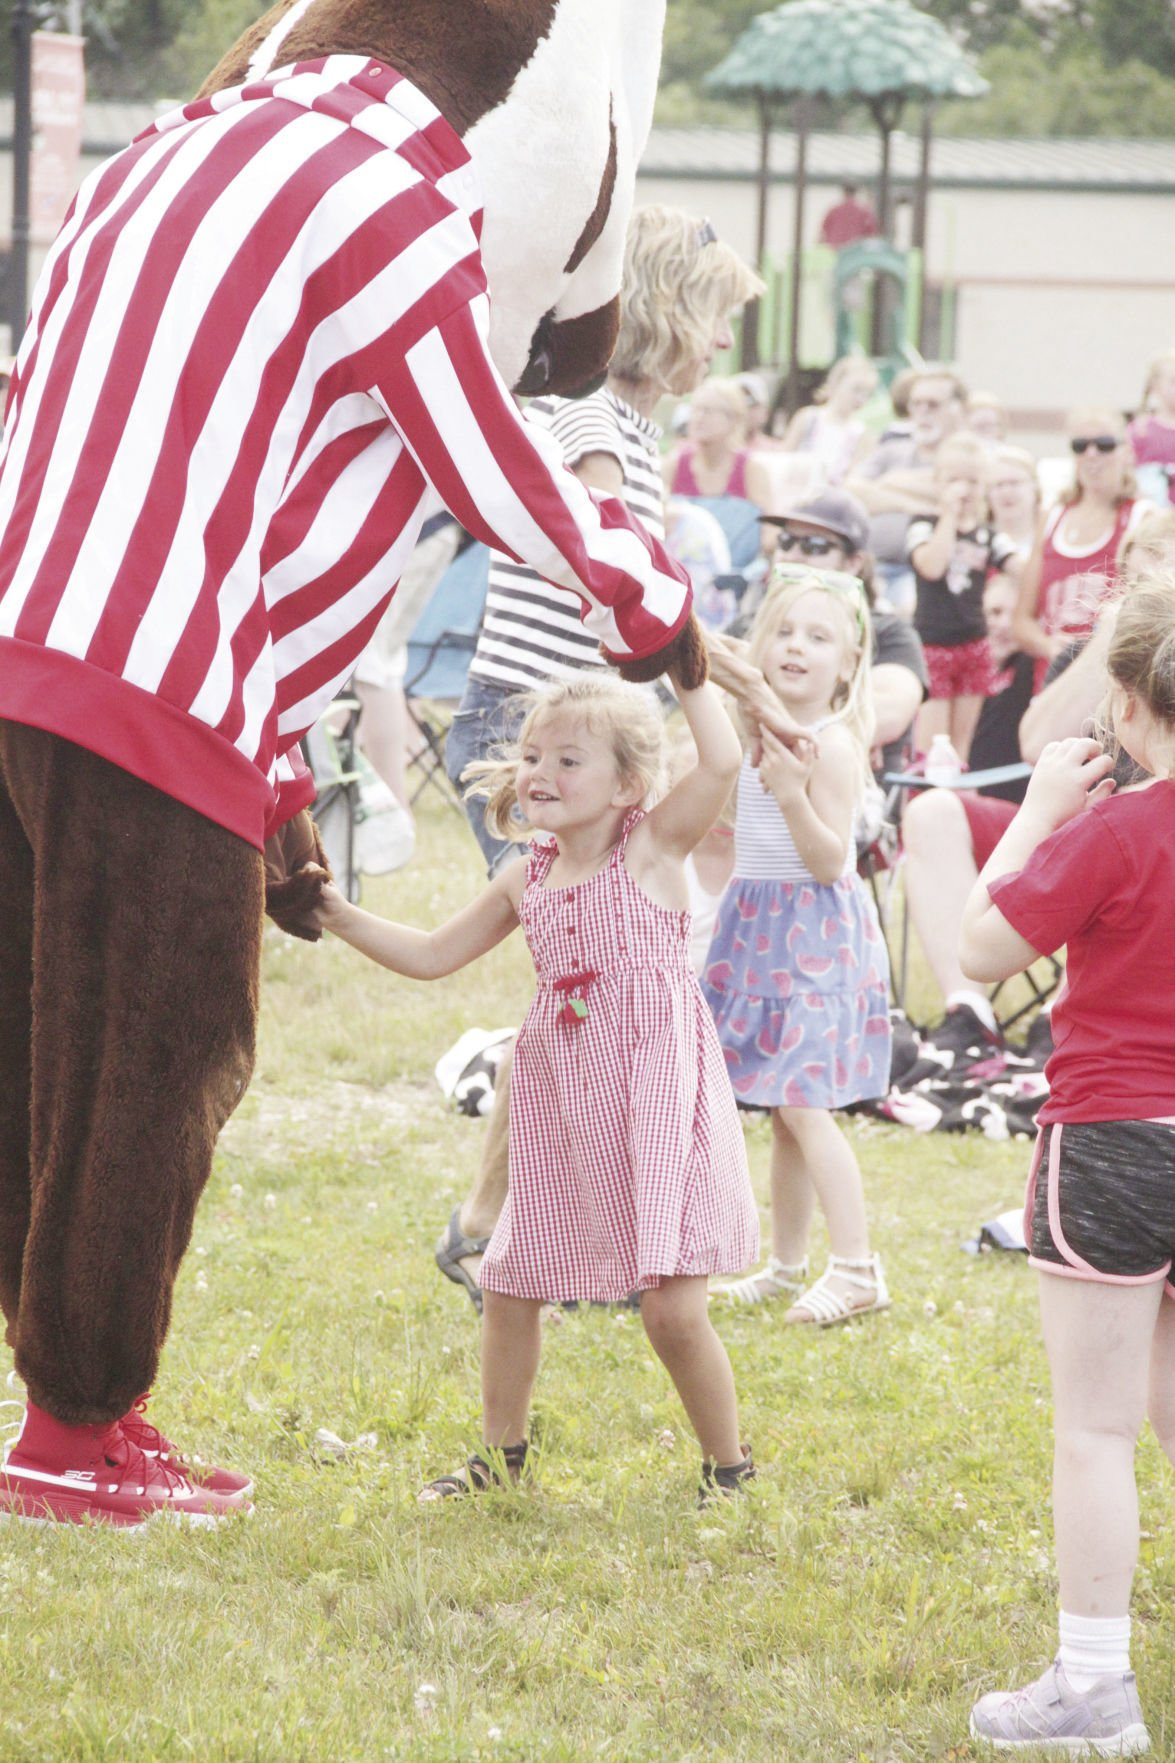 Dancing with Bucky Badger